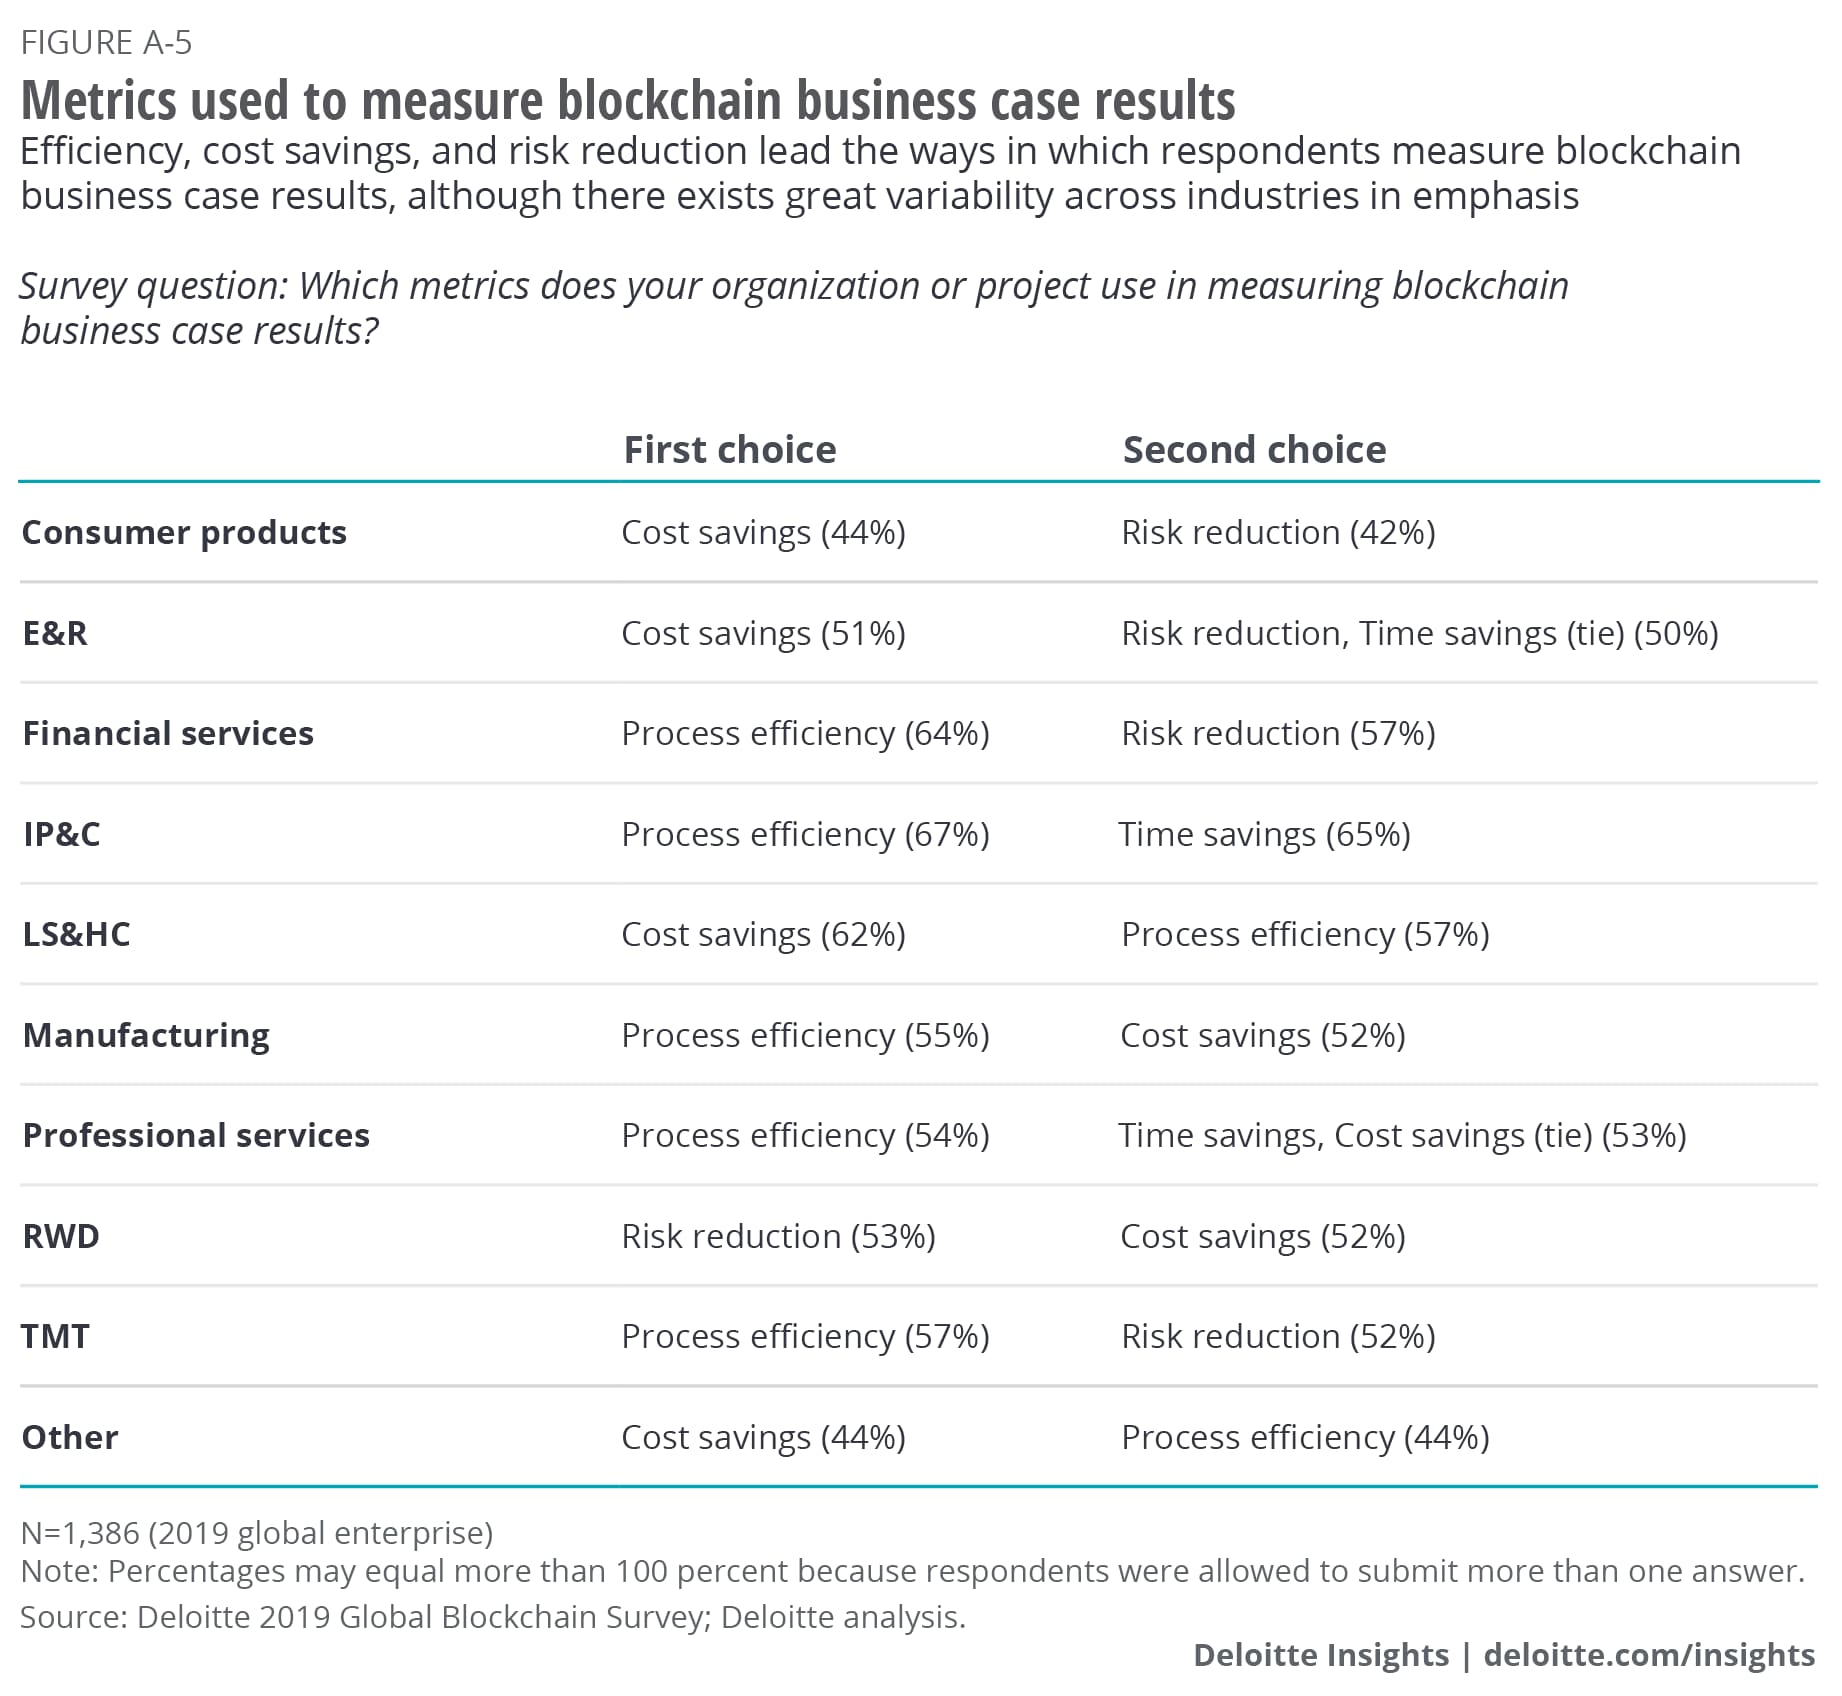 Metrics used to measure blockchain business case results